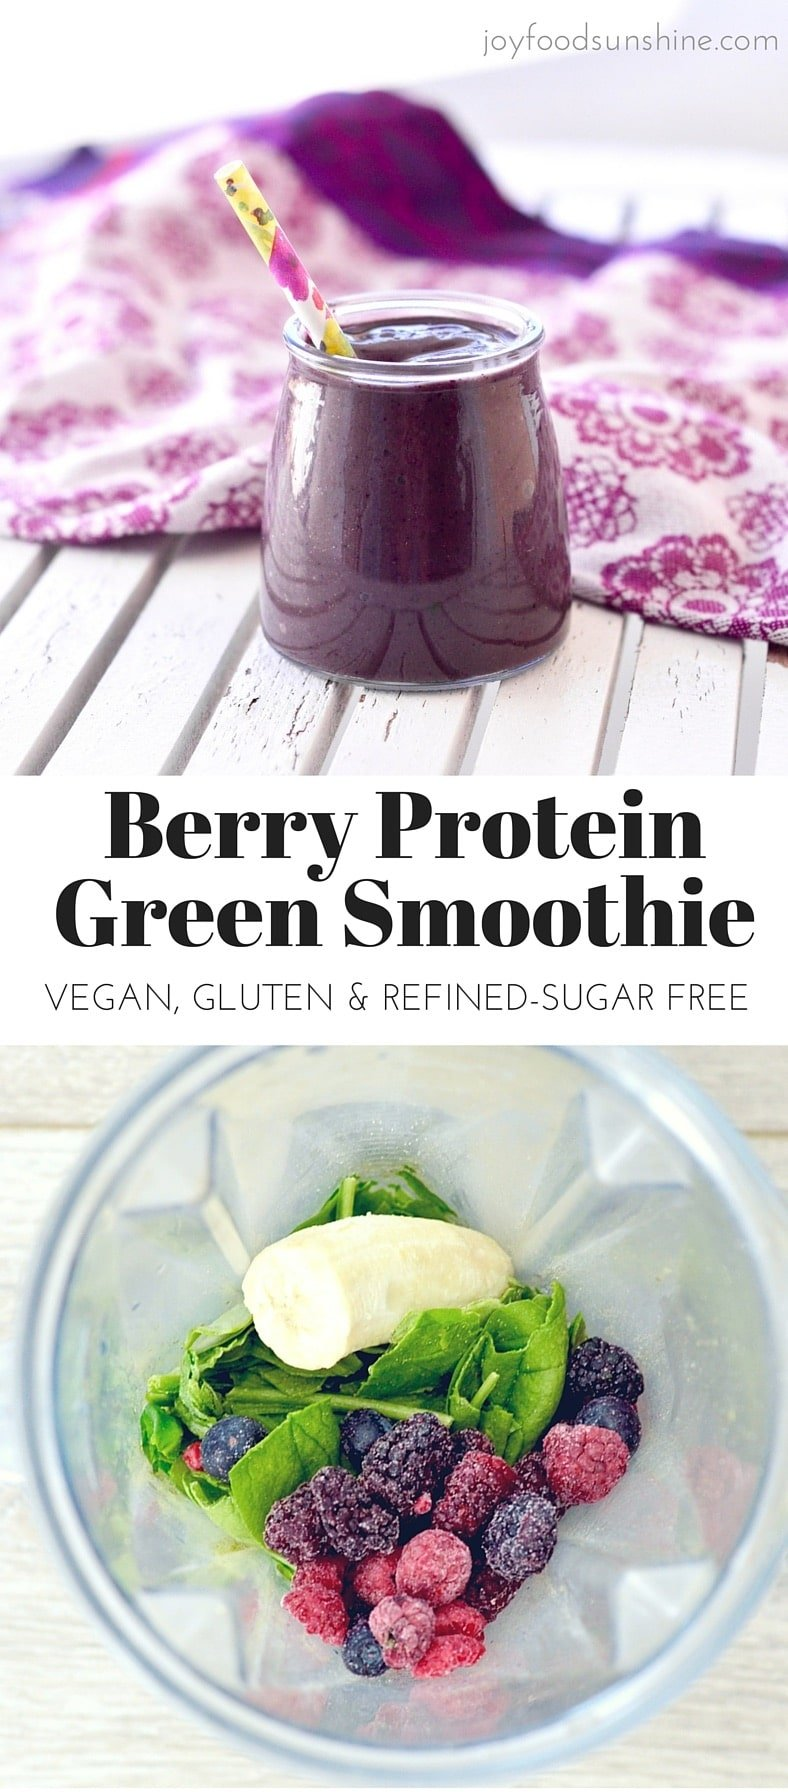 Berry Protein Smoothie! 6 ingredients and 5 minutes results in a tasty smoothie! Perfect for an easy breakfast or lunch! Paleo, Vegan, gluten-free, dairy-free and no added sweeteners!